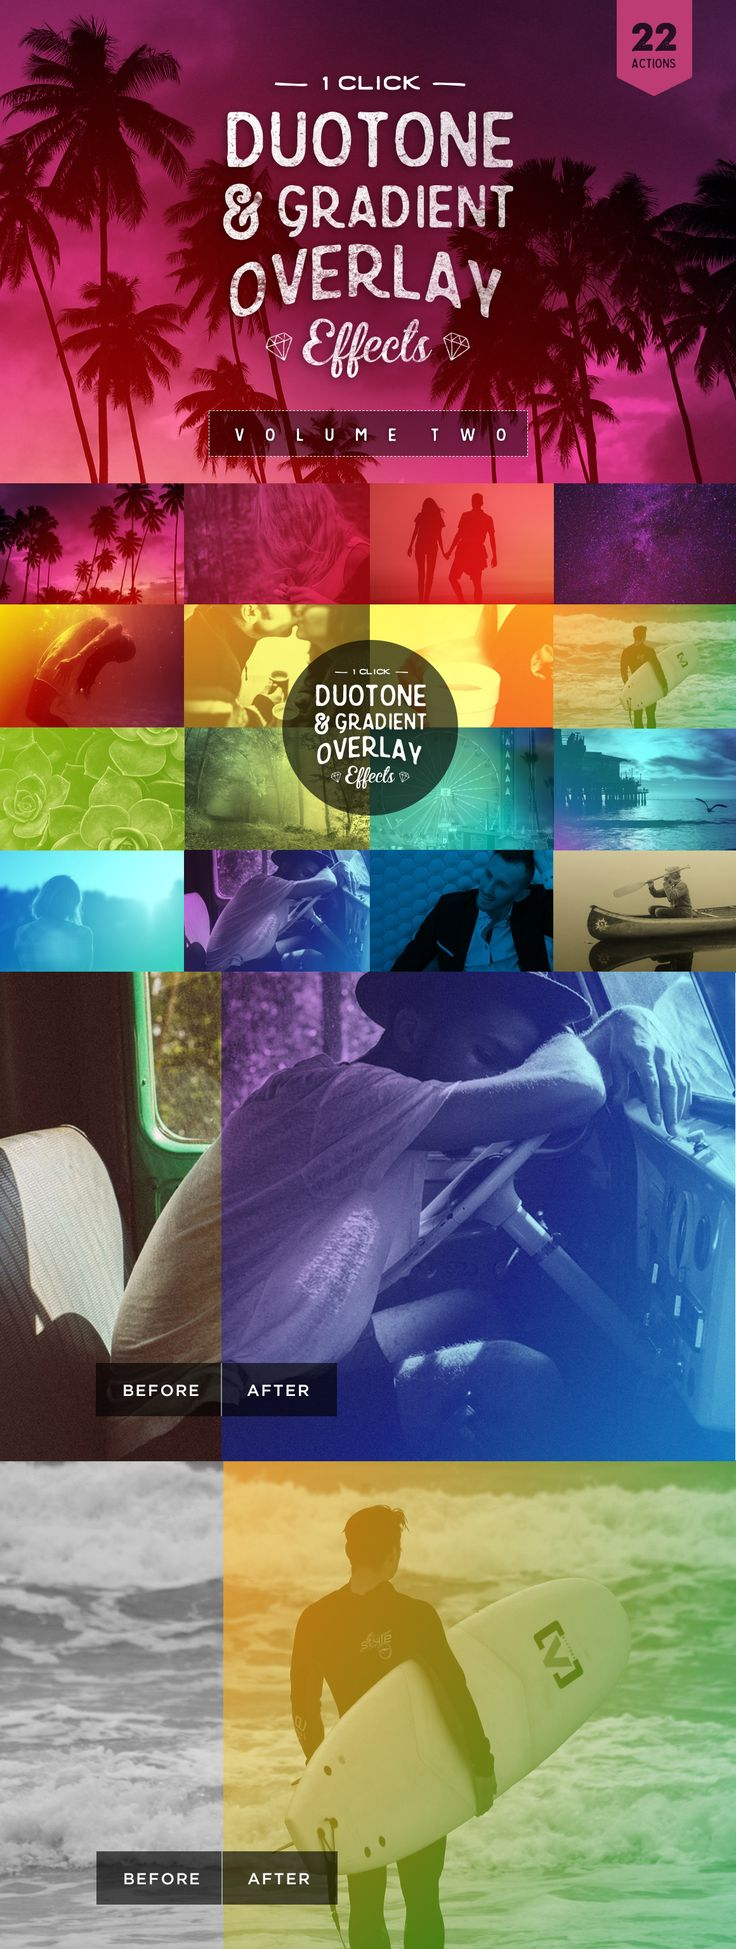 Color Effects - Gradient Overlay #PhotoshopActions --#GraphicDesign @creativemarket